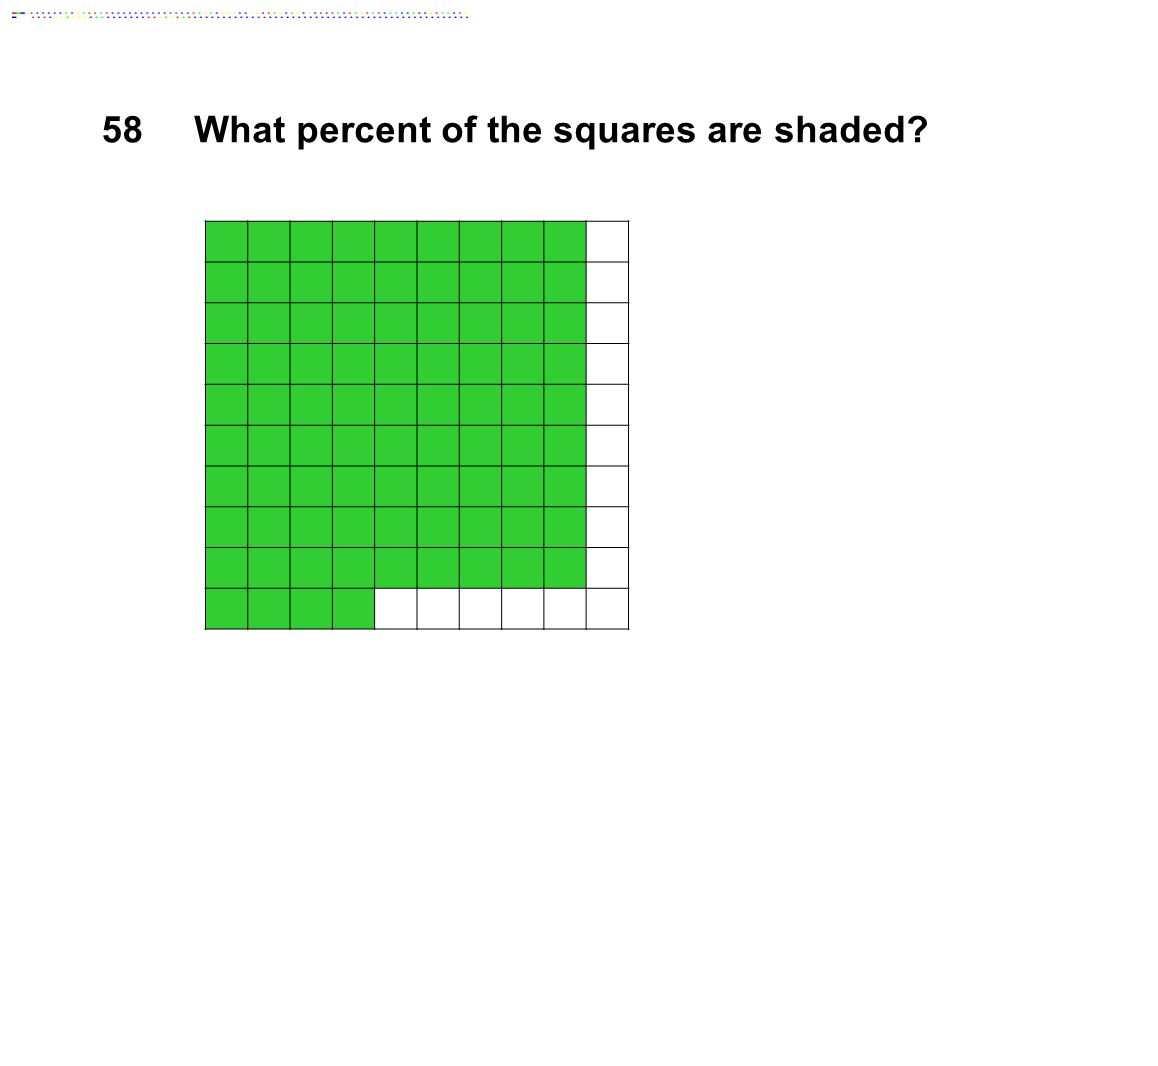 58What percent of the squares are shaded